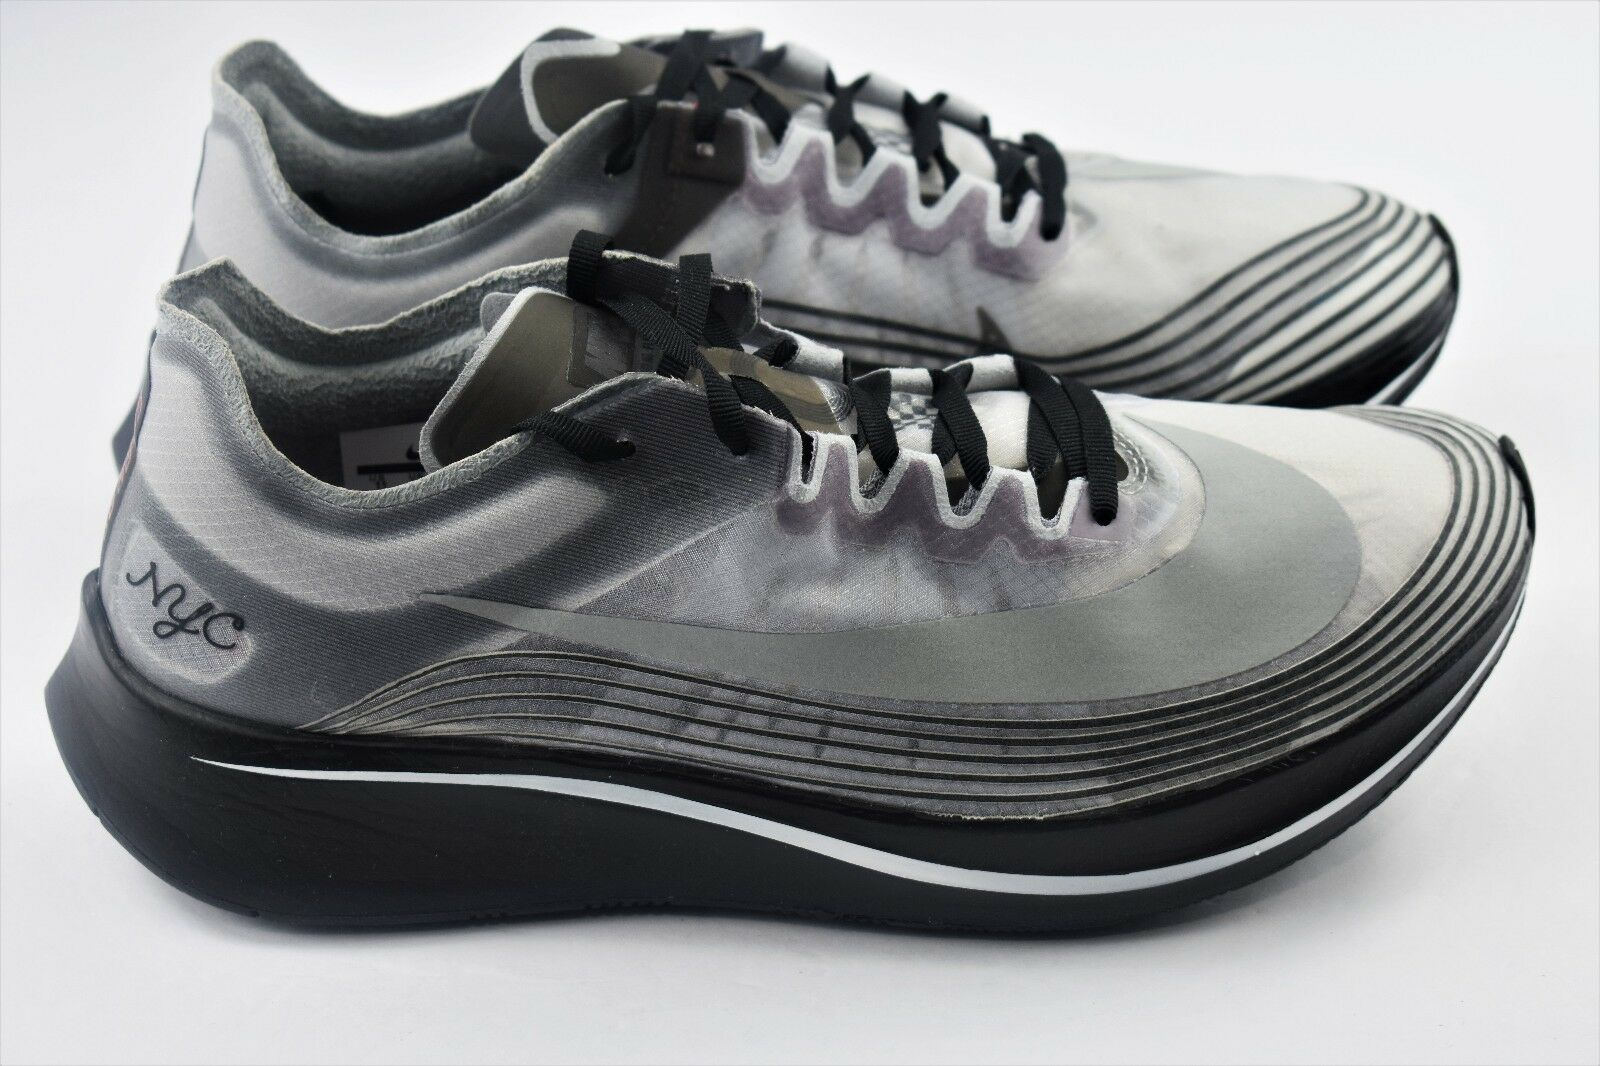 Nike Zoom Fly NYC Mens Comfortable The latest discount shoes for men and women